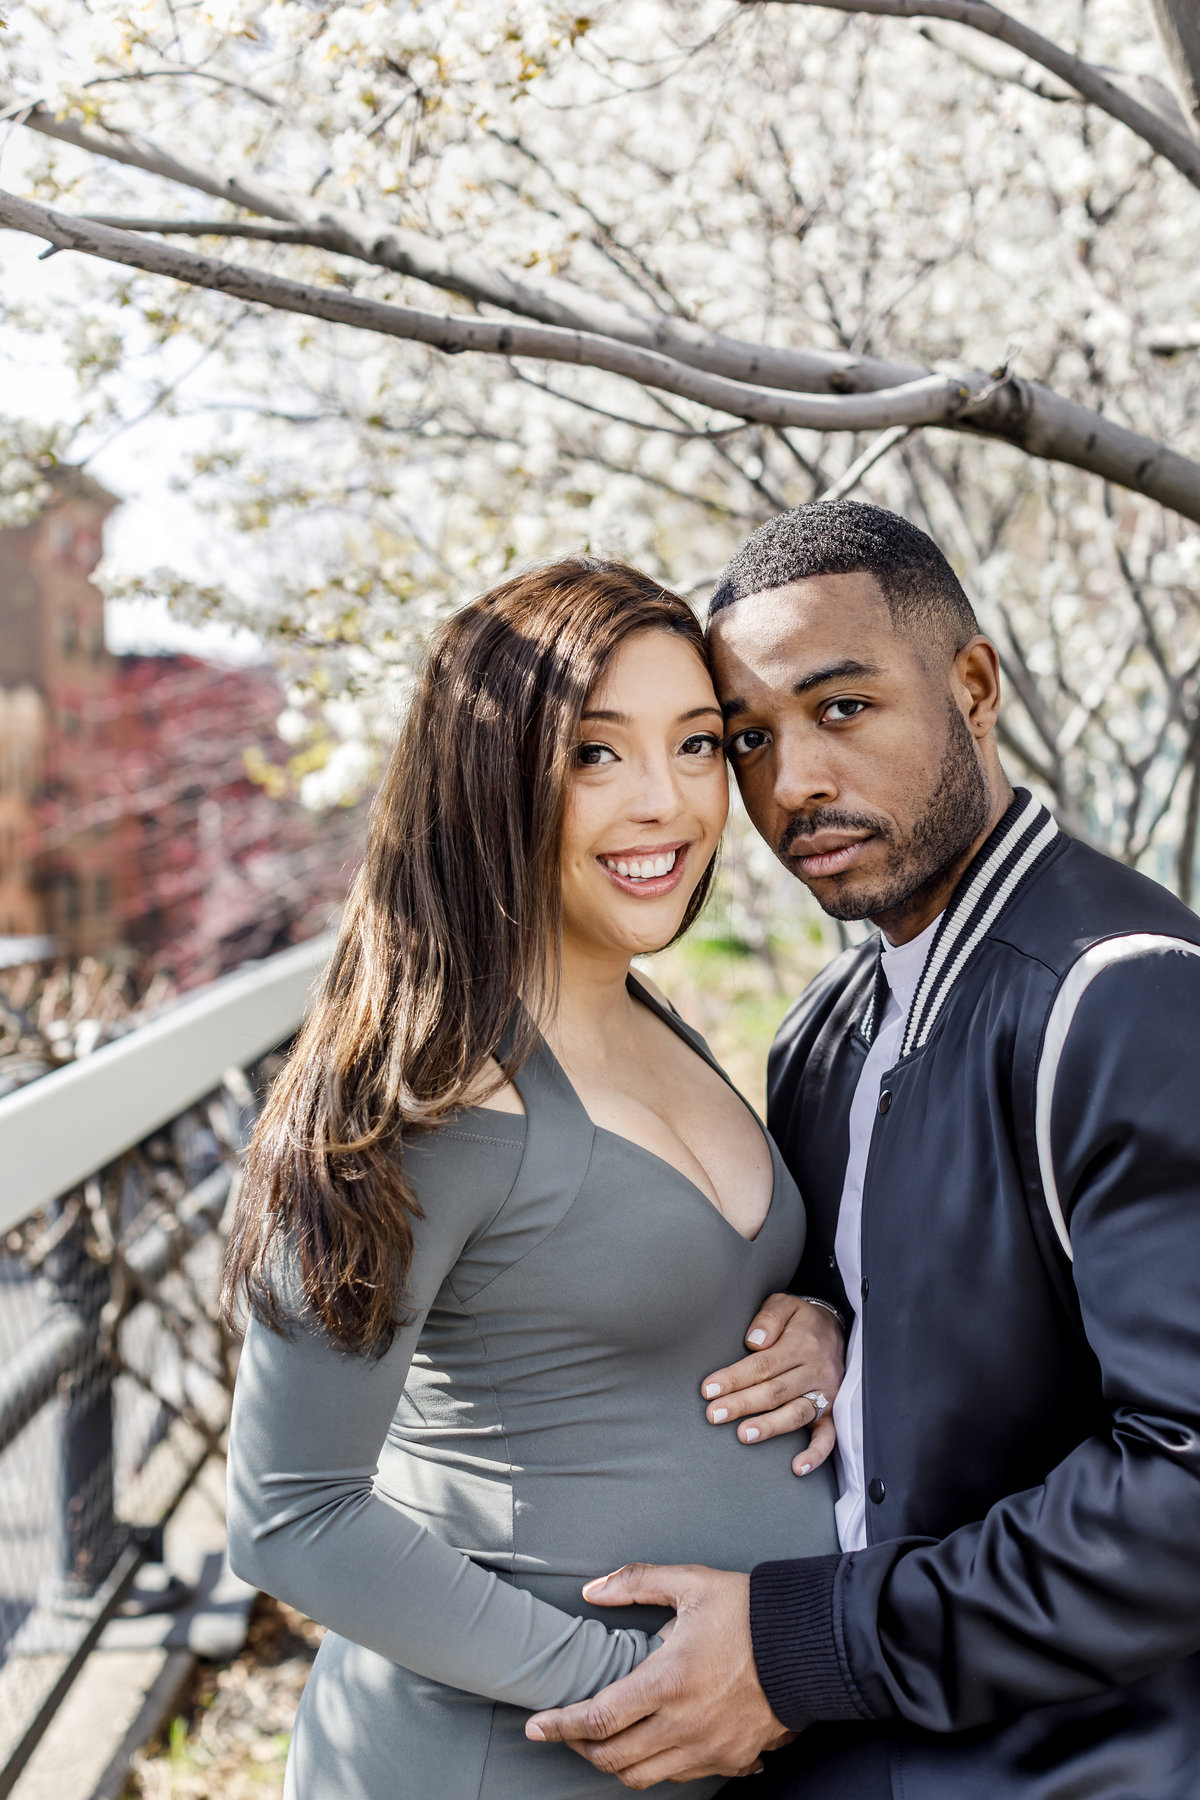 City_Maternity_Session_Inspiration_New_York_Amy_Anaiz003